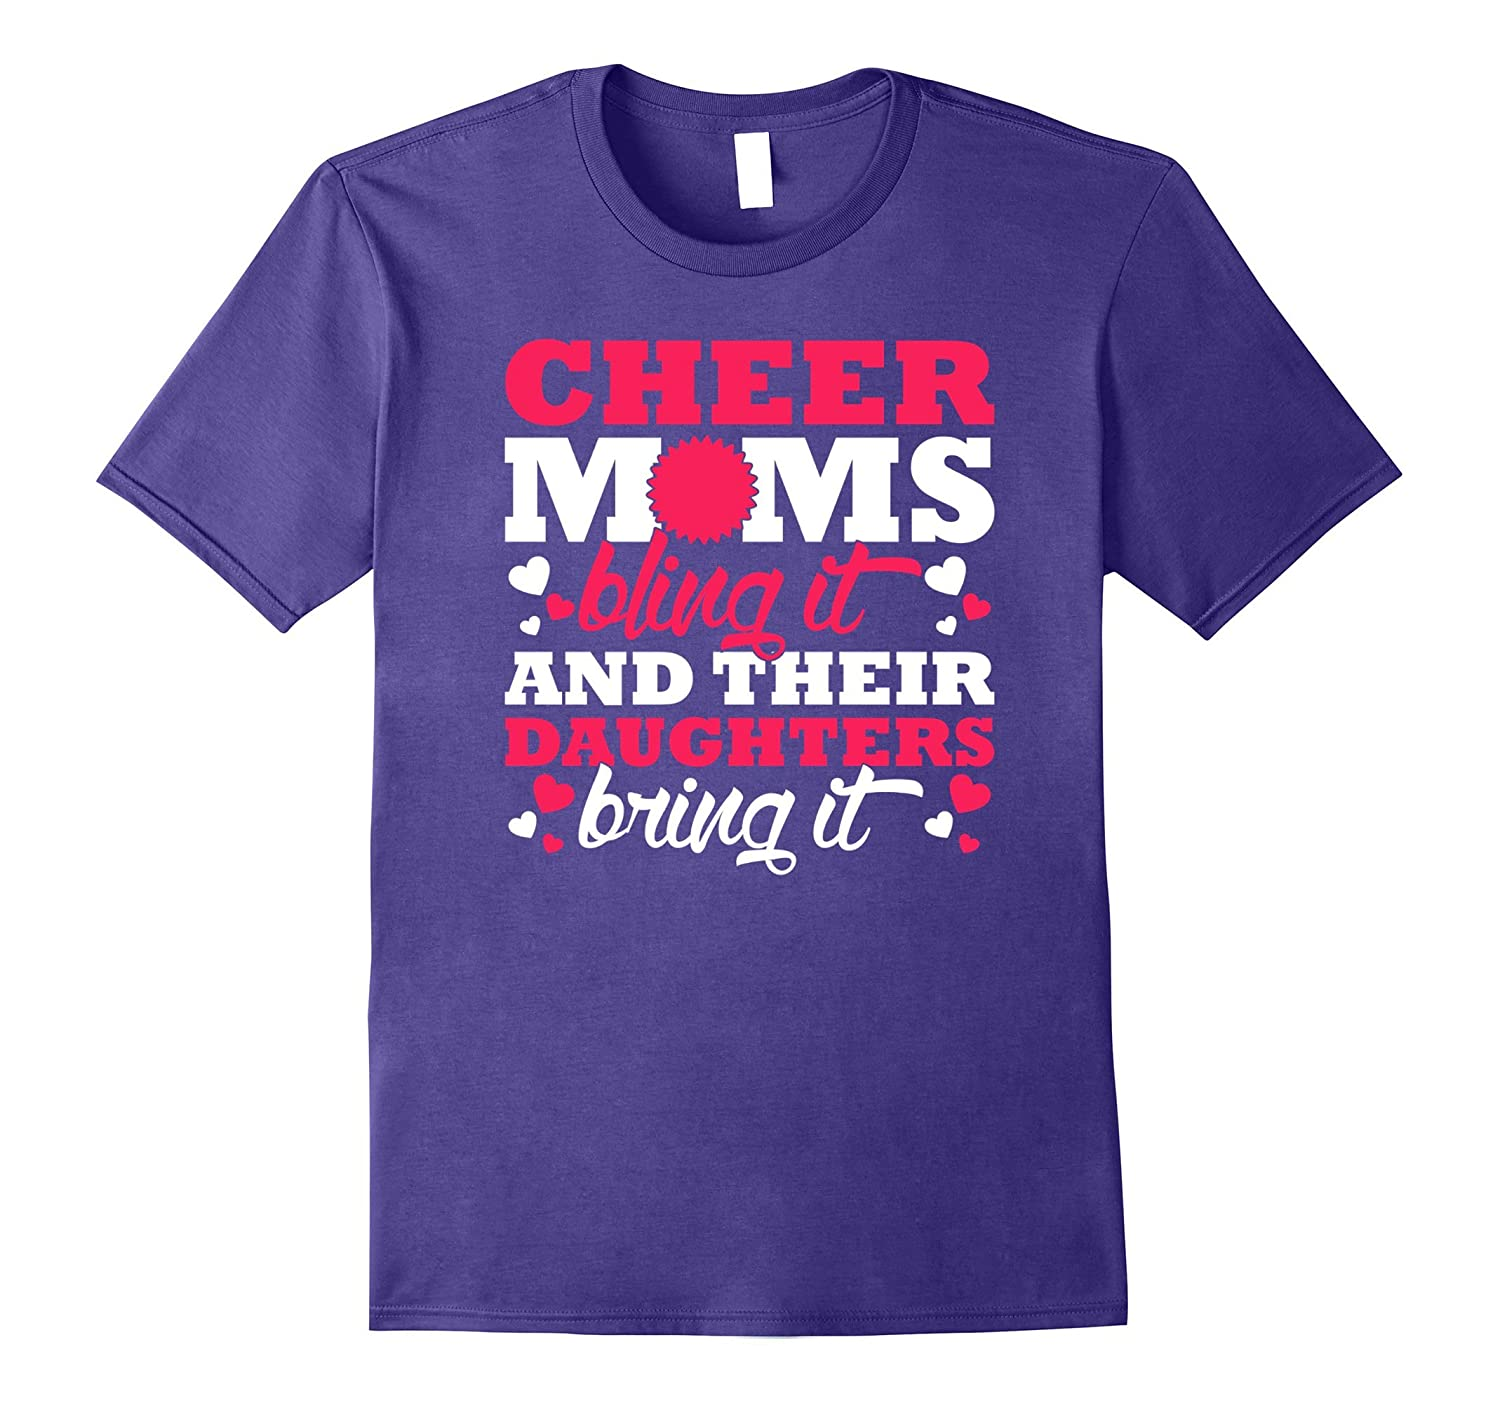 Cheer Moms Bling It Daughters Bring It Tee Vision T-Shirt-TH